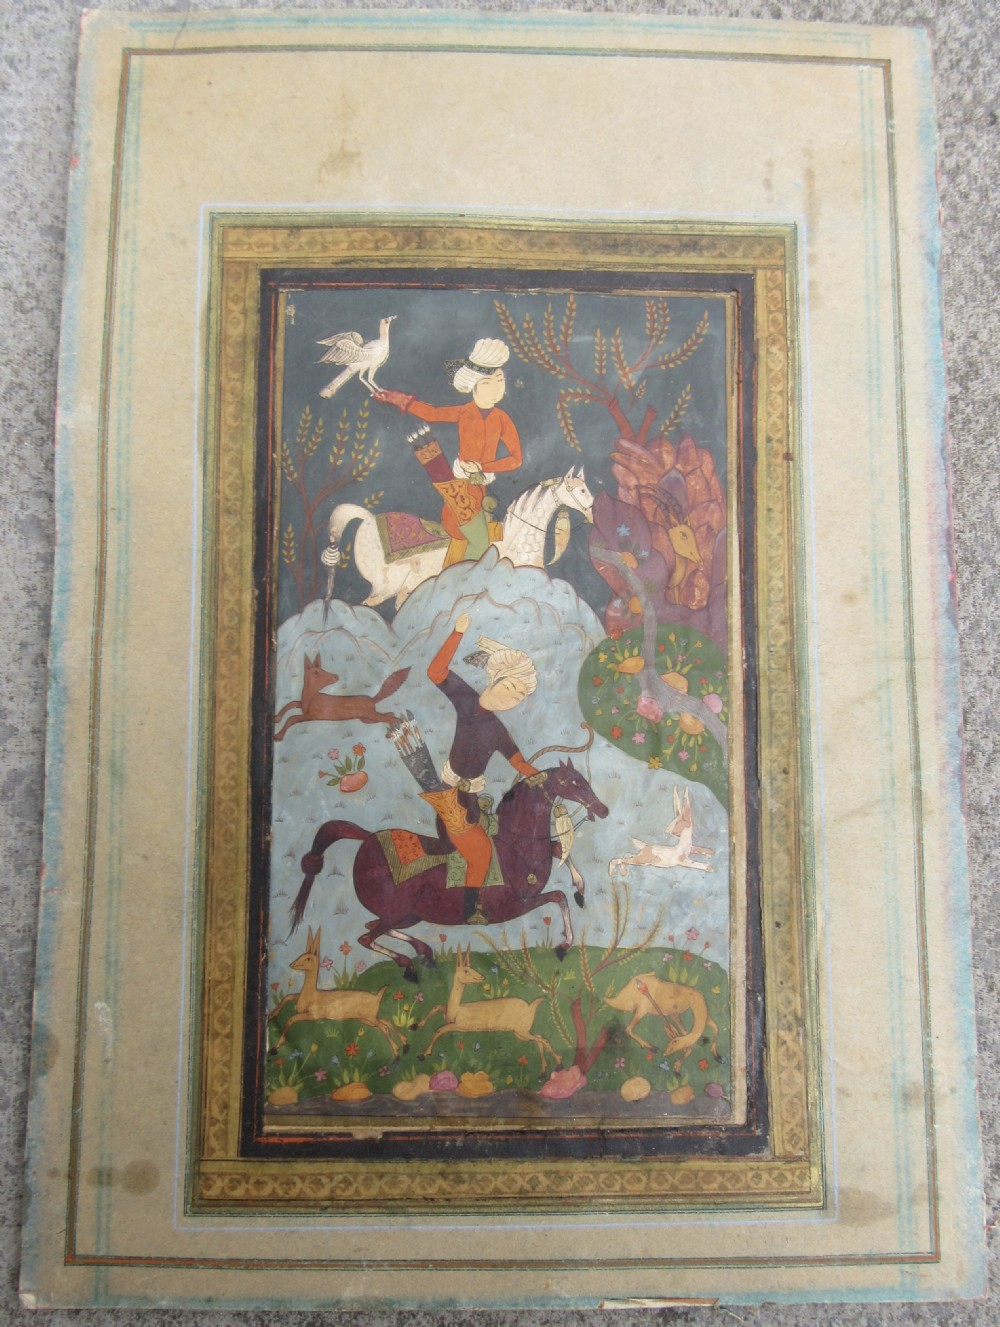 a persian safavid miniature painting nobles out hunting 17th century